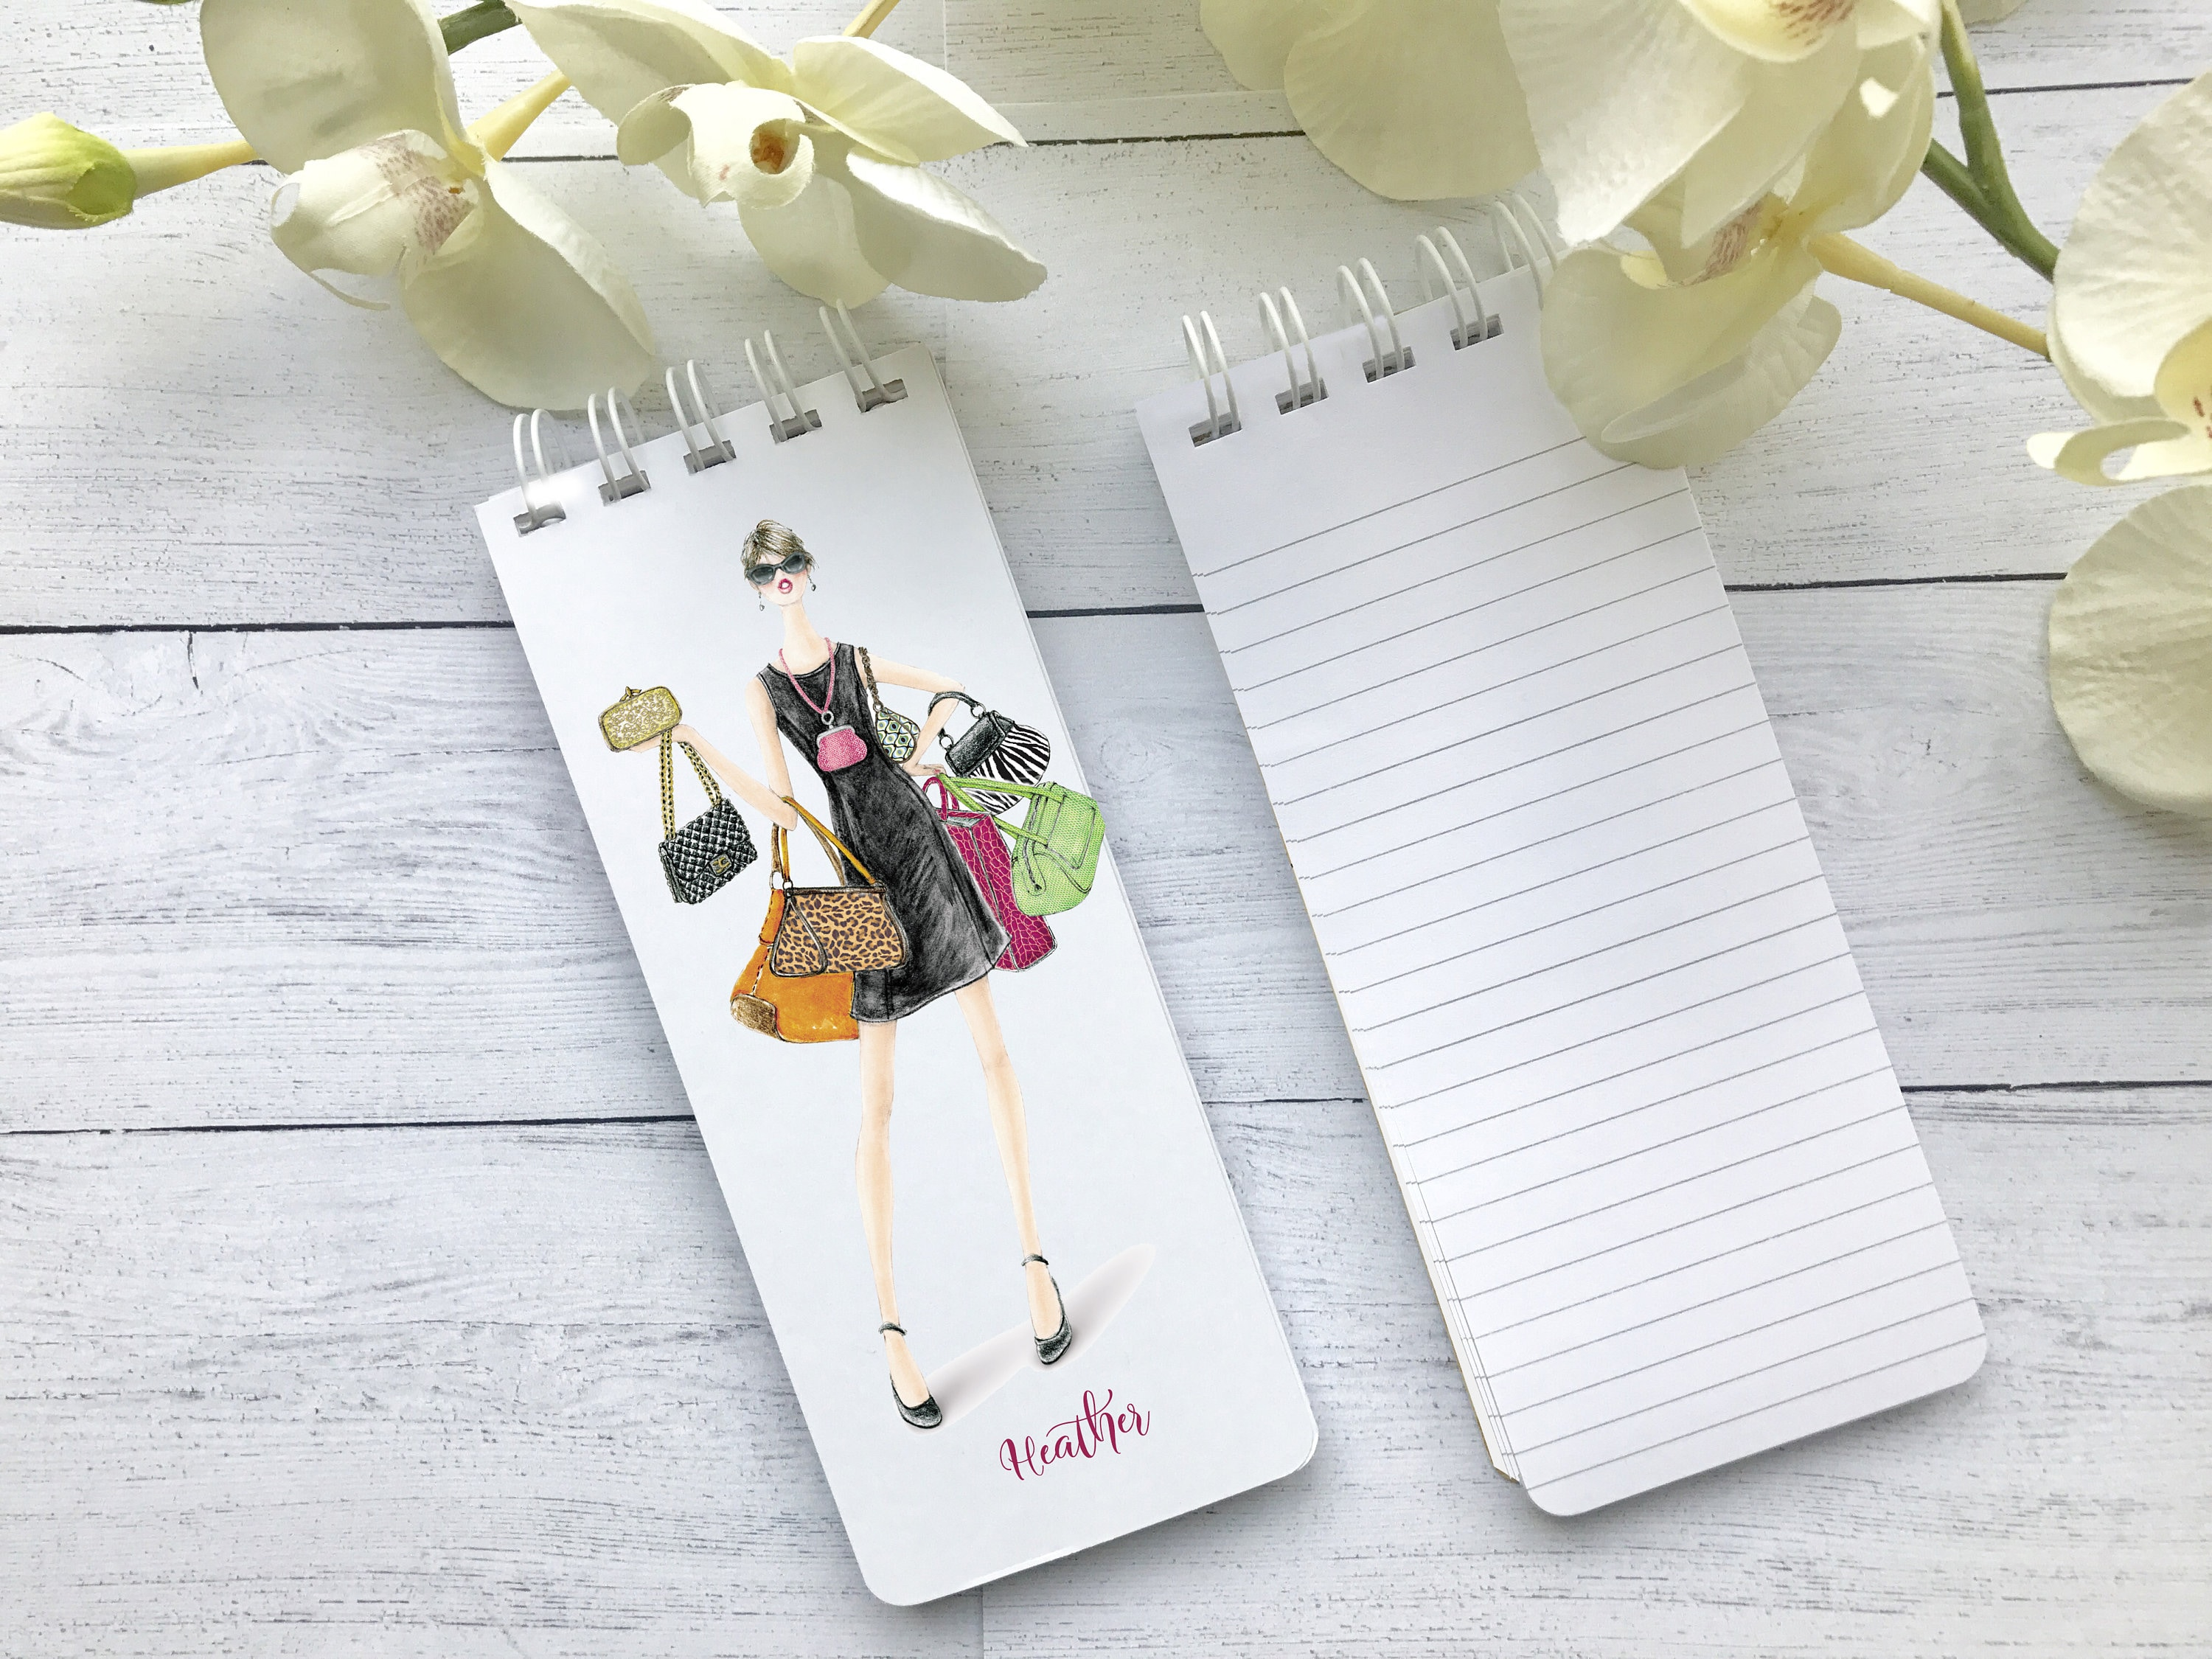 spiral notepads to do lists set of 3 personalized note pads